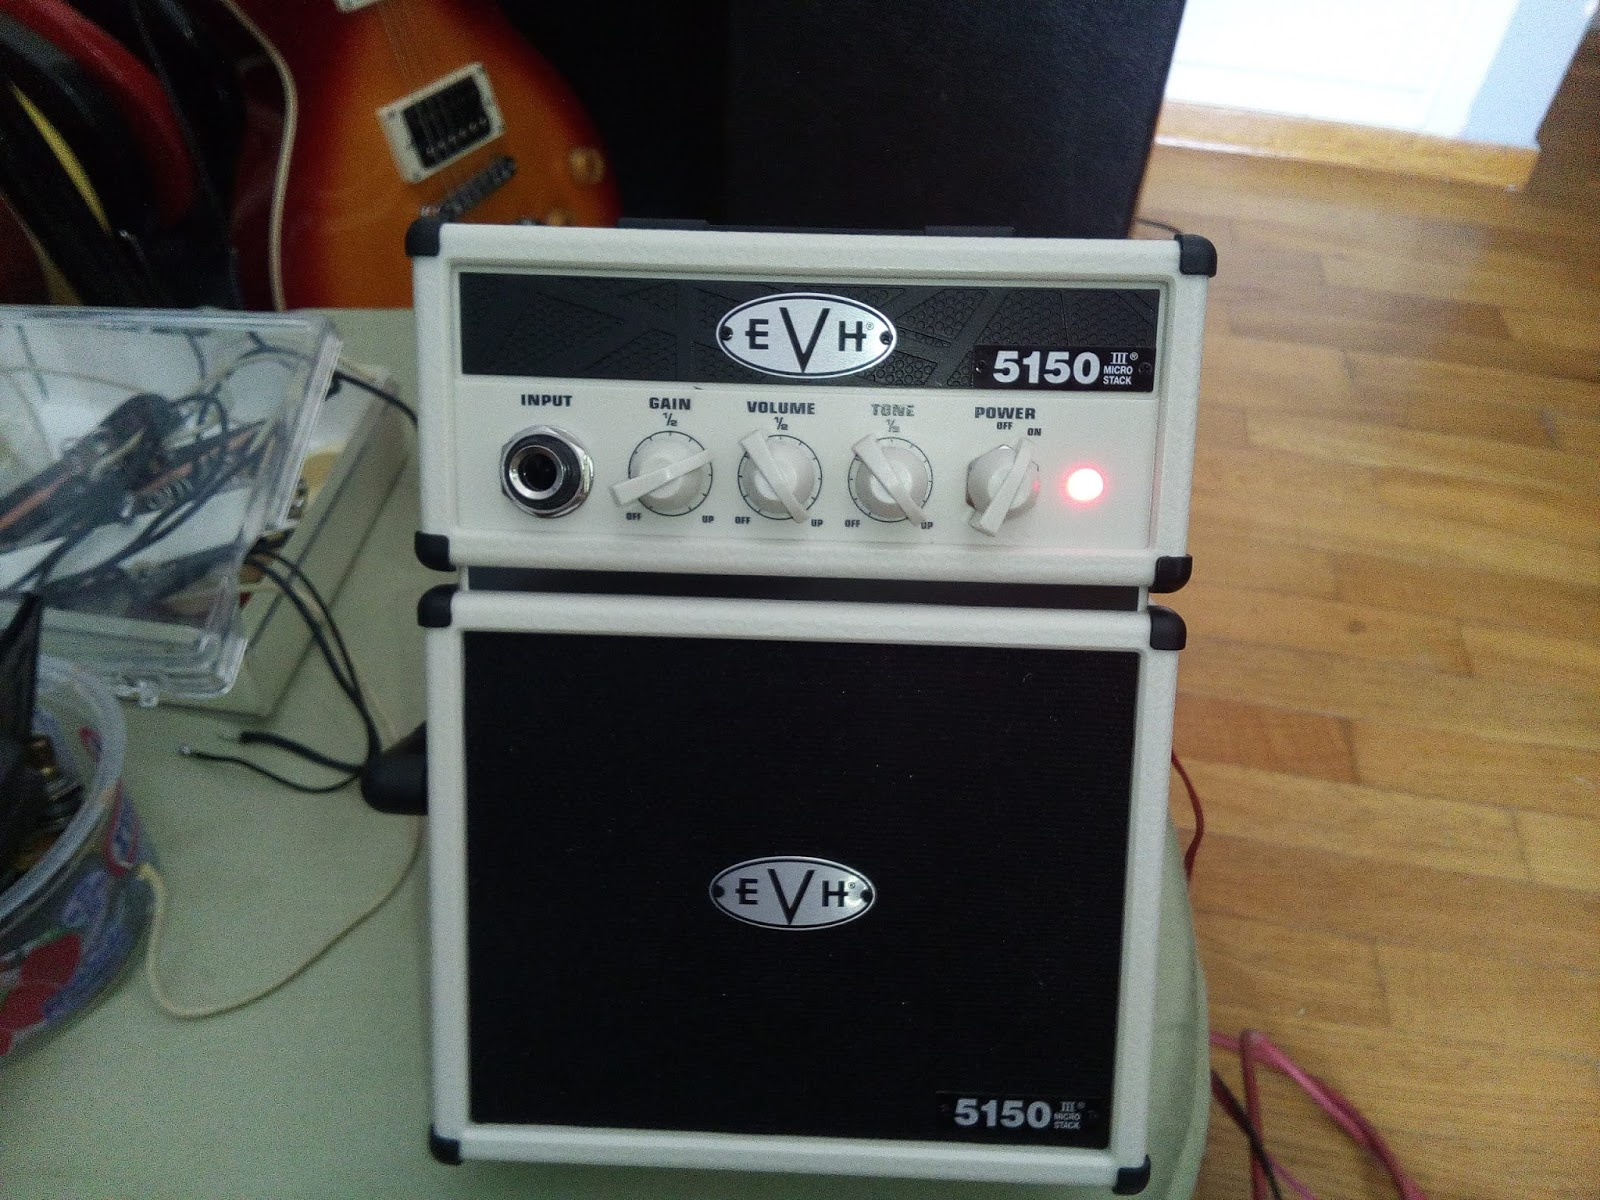 53c749bf44d Here s a new micro-amp project I ve recently finished. I bought the new EVH  5150 III Micro Stack amplifier to test it out as it was affordable and I  wanted ...